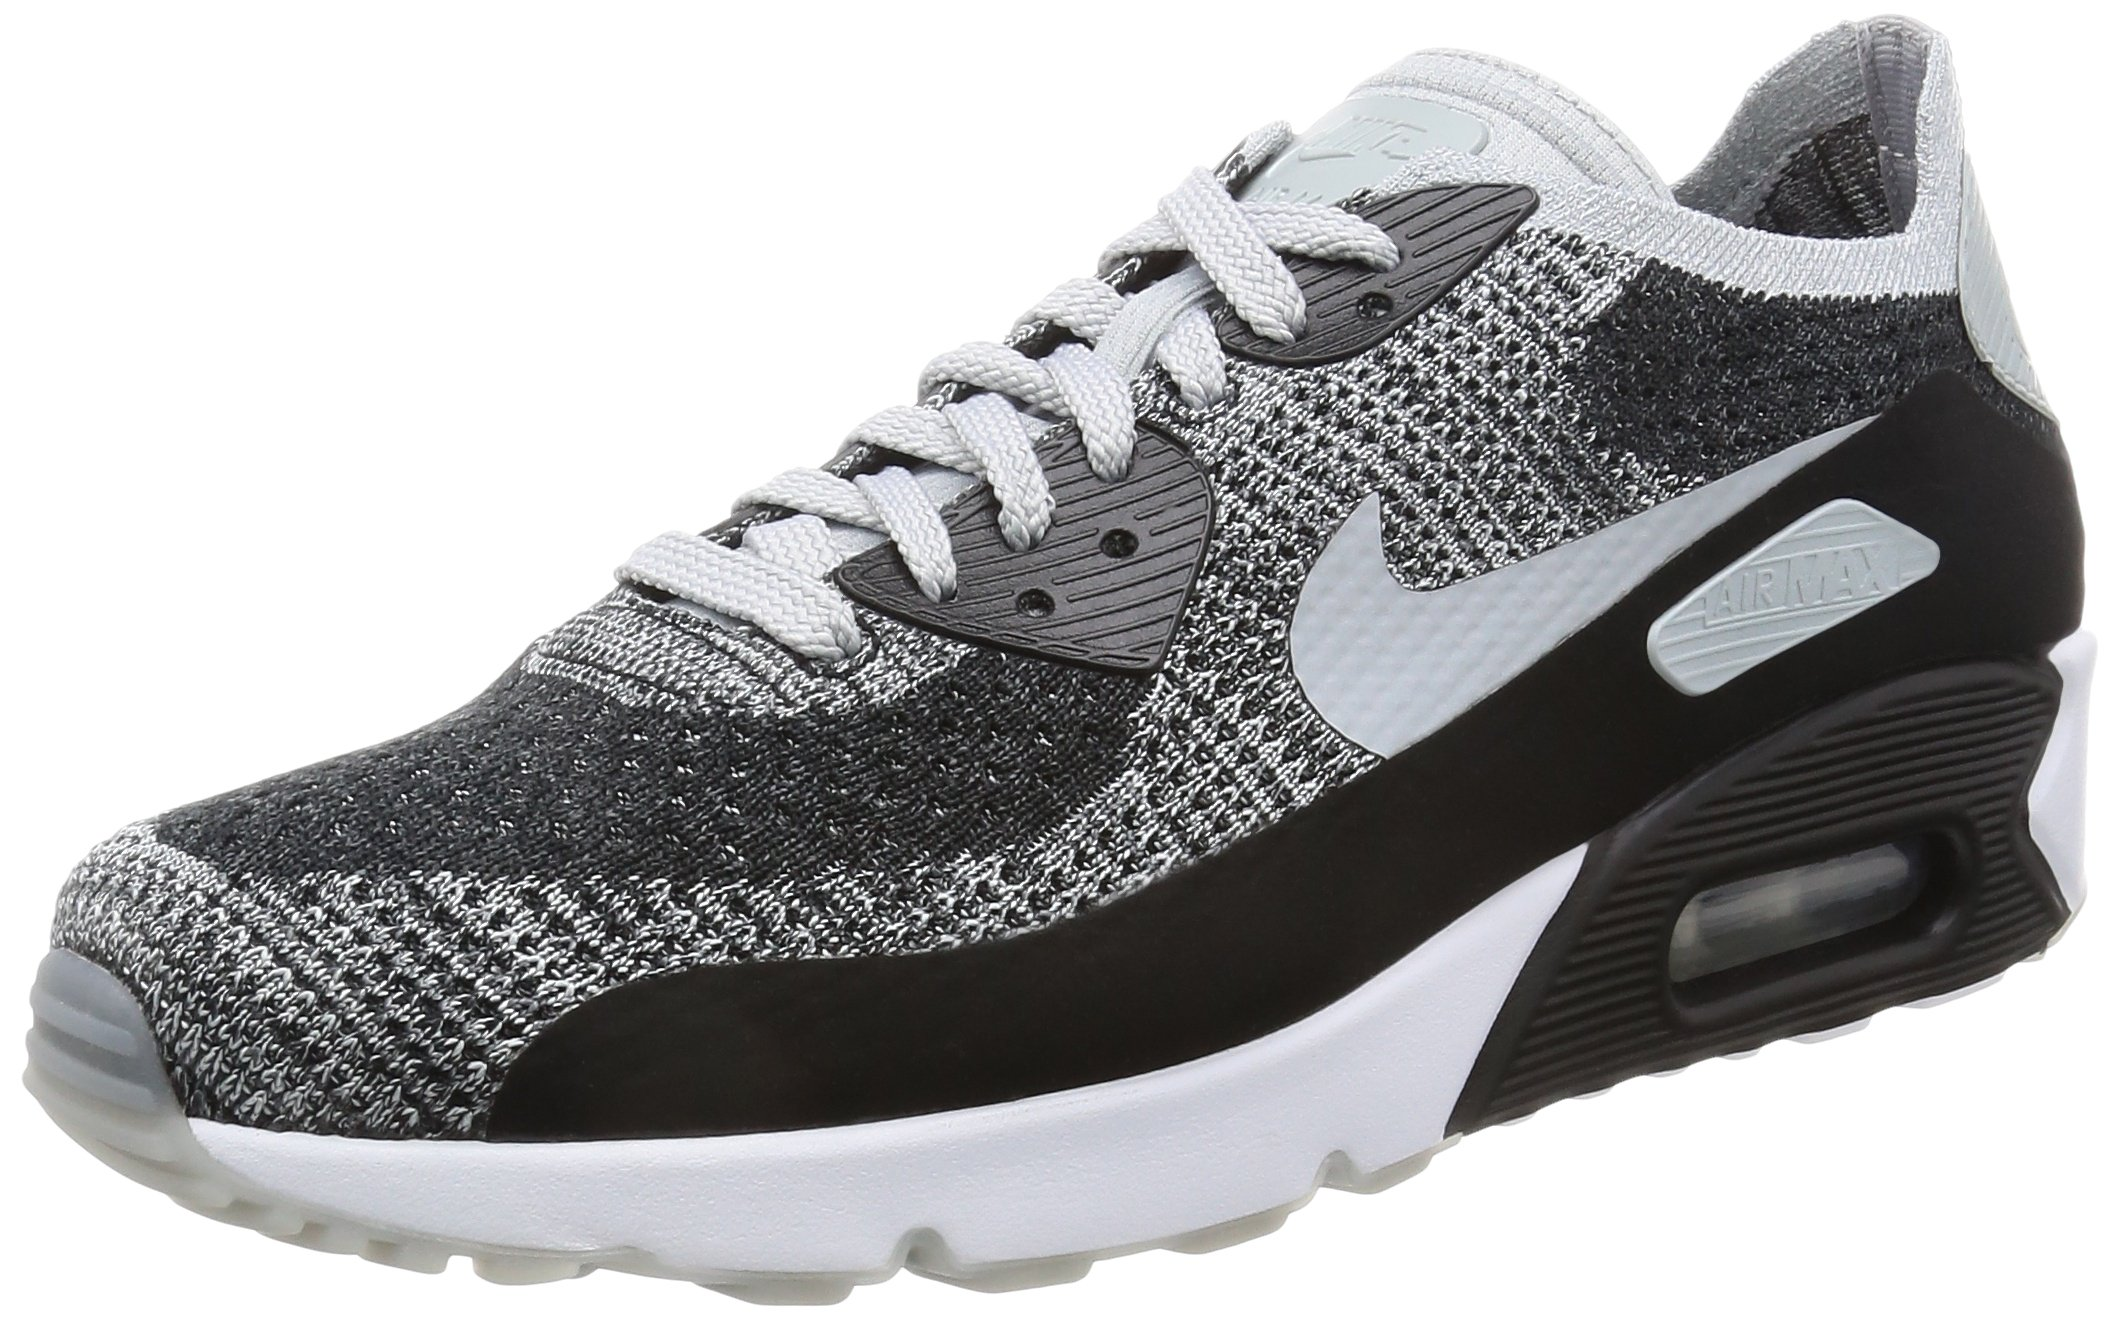 premium selection a7878 3f252 Galleon - NIKE Mens Air Max 90 Ultra 2.0 Flyknit Running Shoes Black Wolf  Grey Pure Platinum 875943-005 Size 9